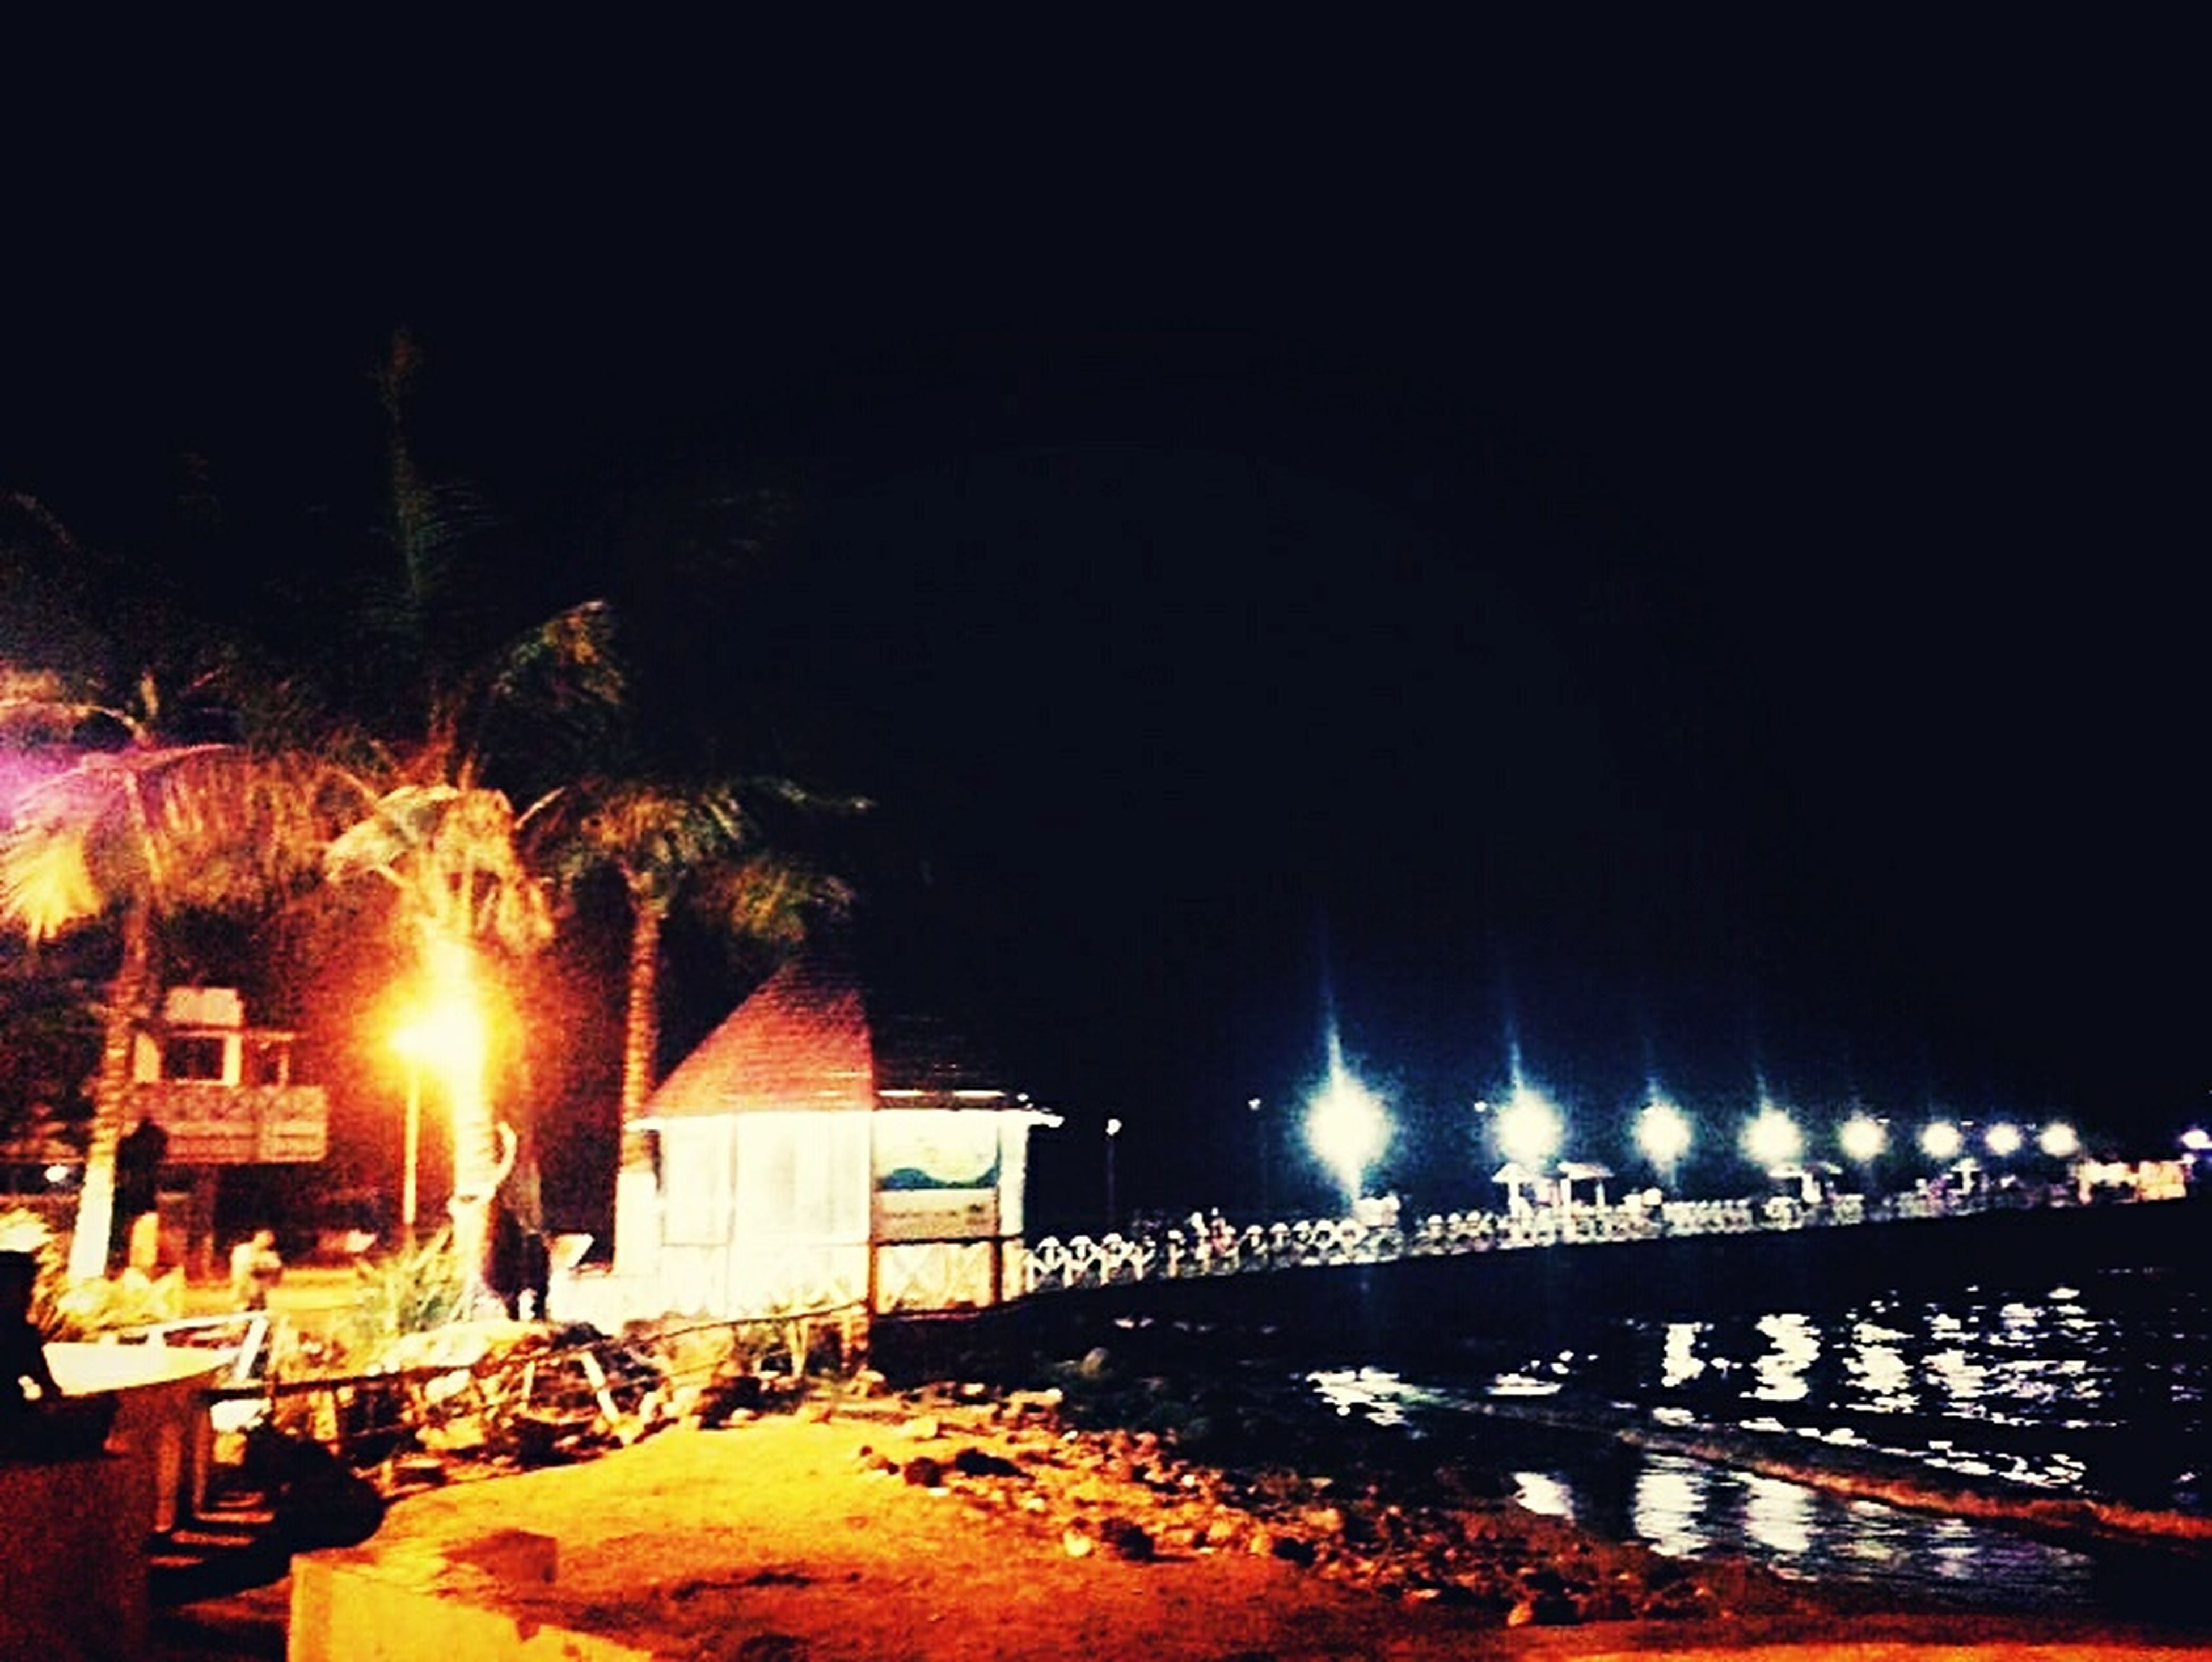 illuminated, night, built structure, architecture, lighting equipment, building exterior, street light, house, light - natural phenomenon, clear sky, glowing, outdoors, copy space, no people, dark, railing, tree, lit, absence, bridge - man made structure